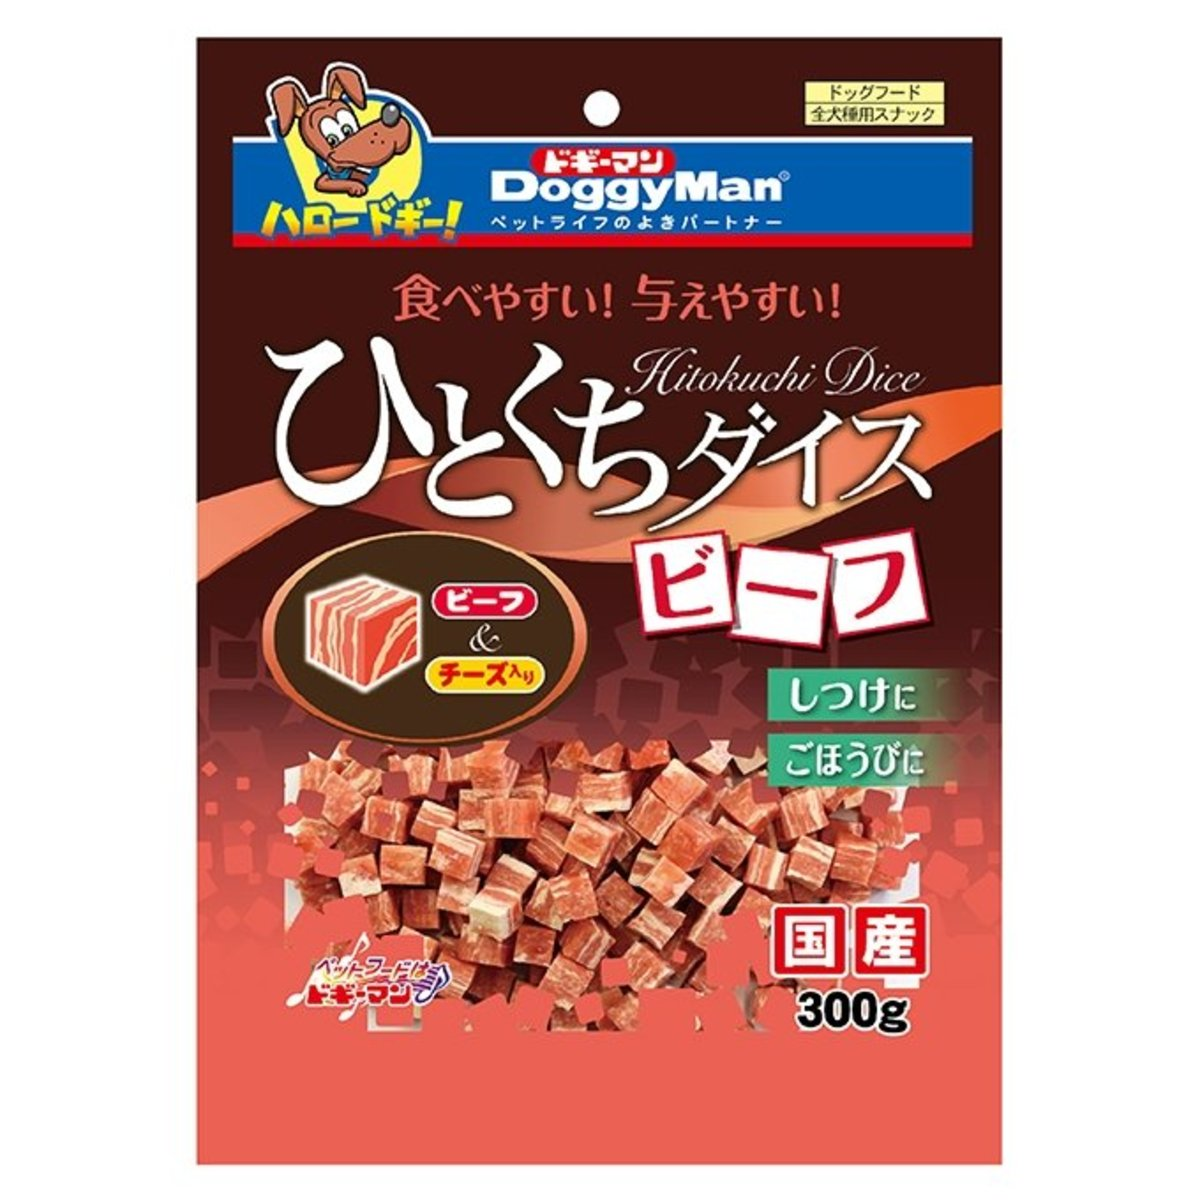 Mouthful Dice Beef (300g) #81746 A7